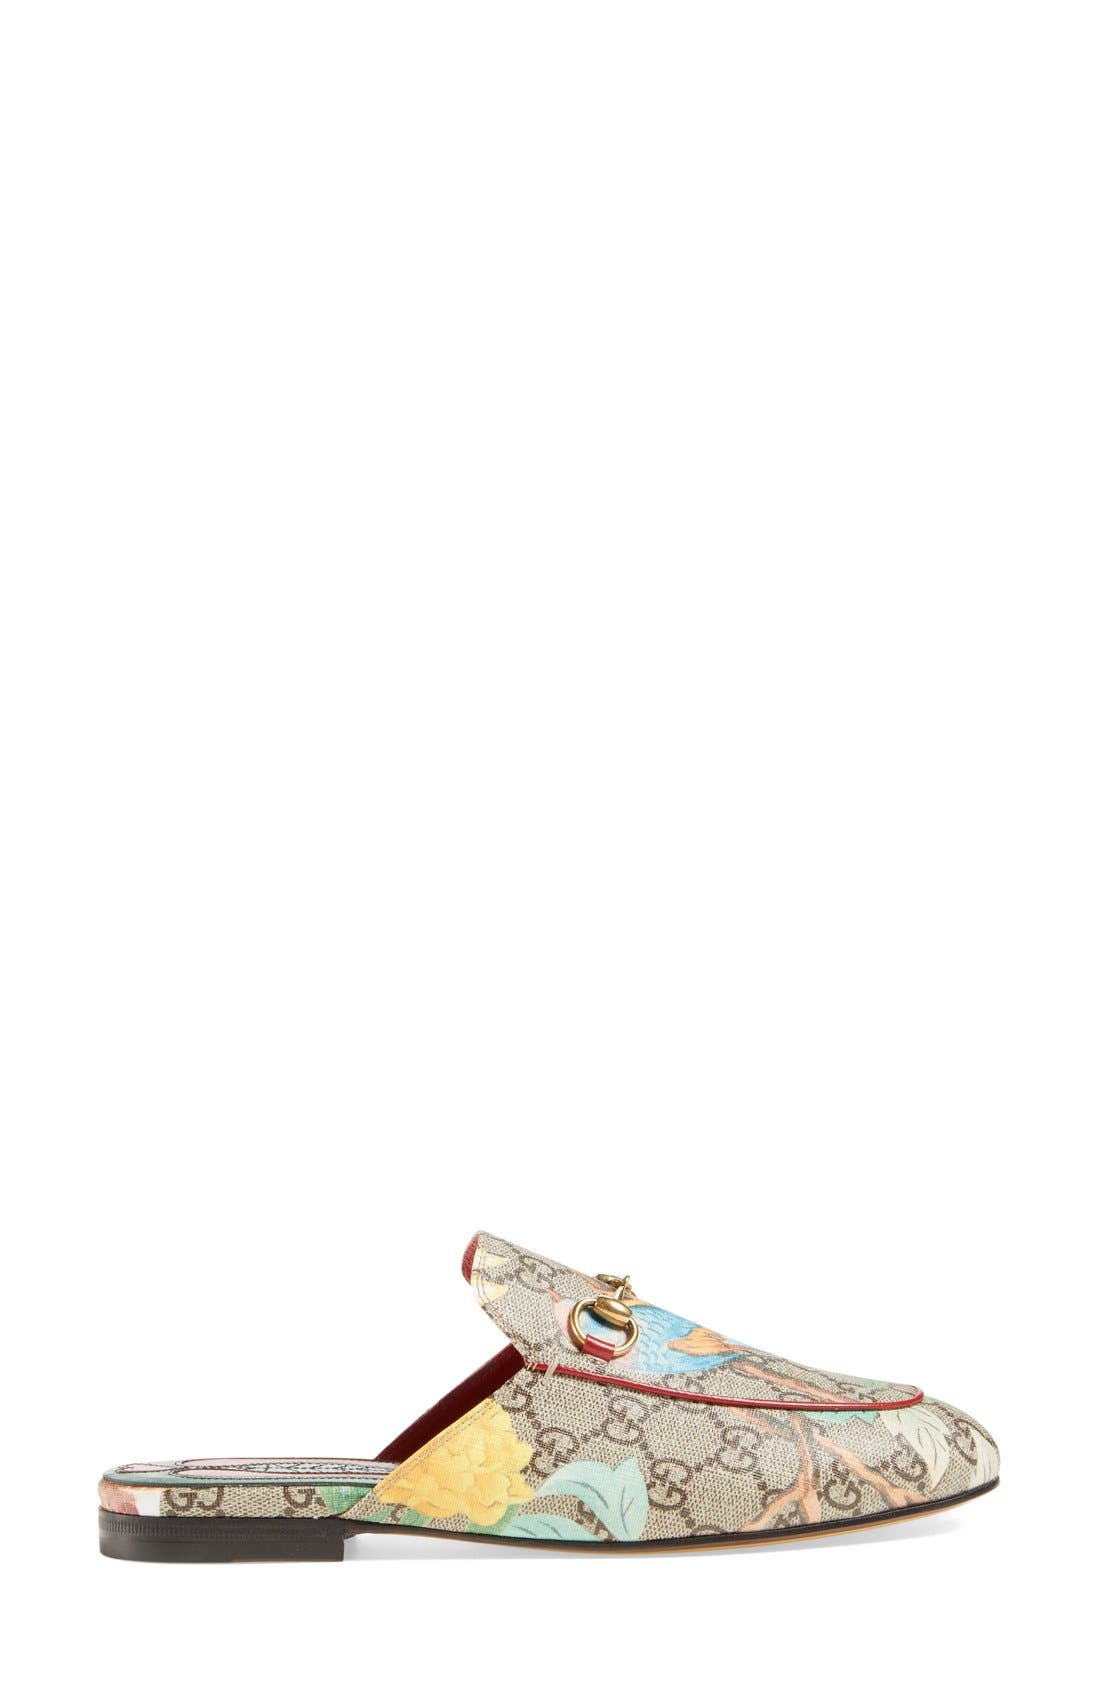 'Princetown' Floral Print Mule Loafer,                             Alternate thumbnail 2, color,